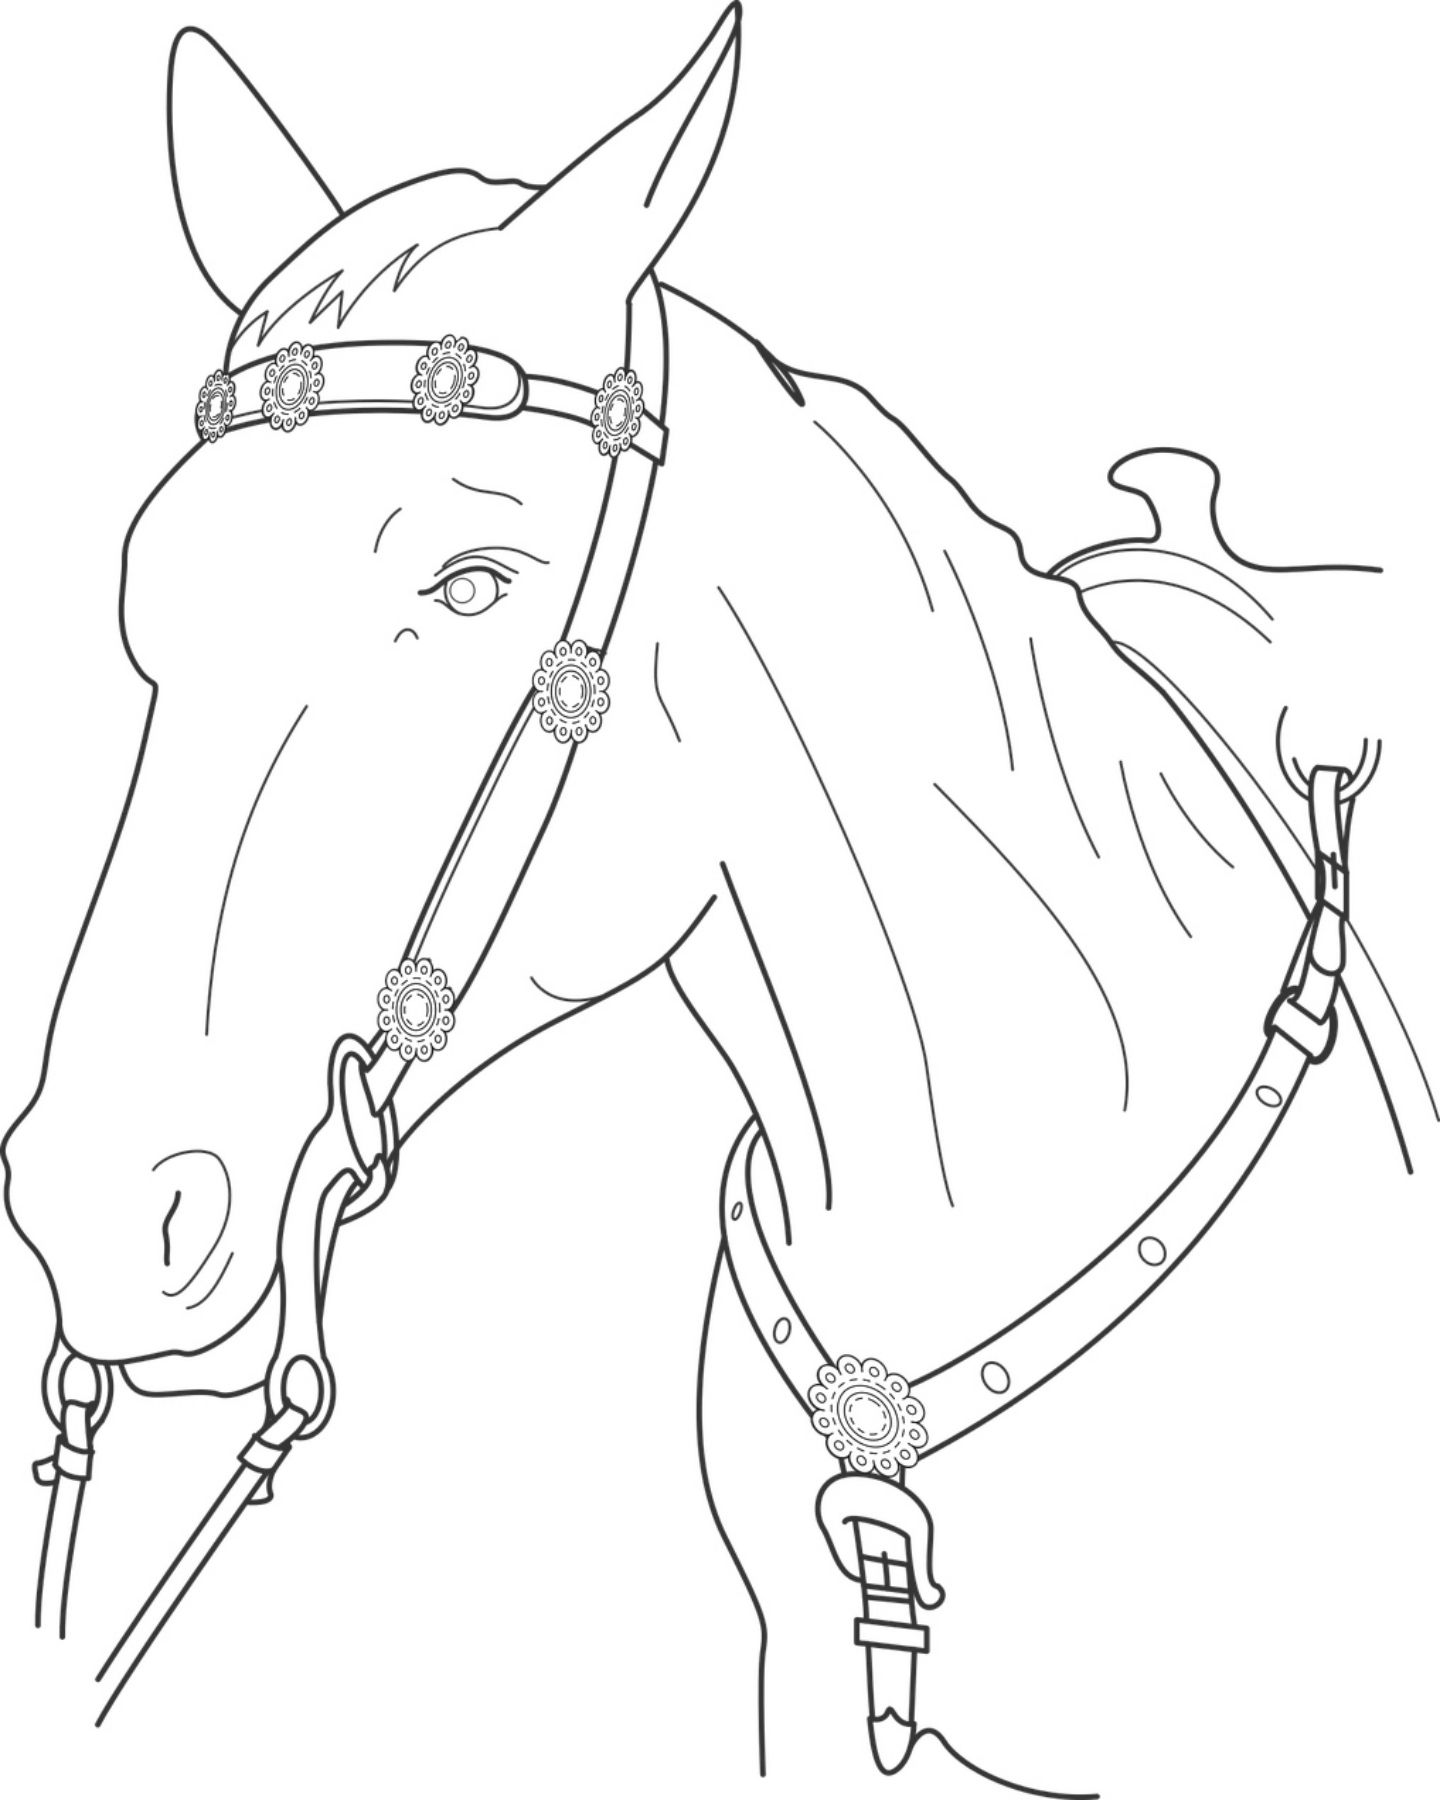 Free Printable Horse Coloring Page | ~*Free Printables*~ | Pinterest ...